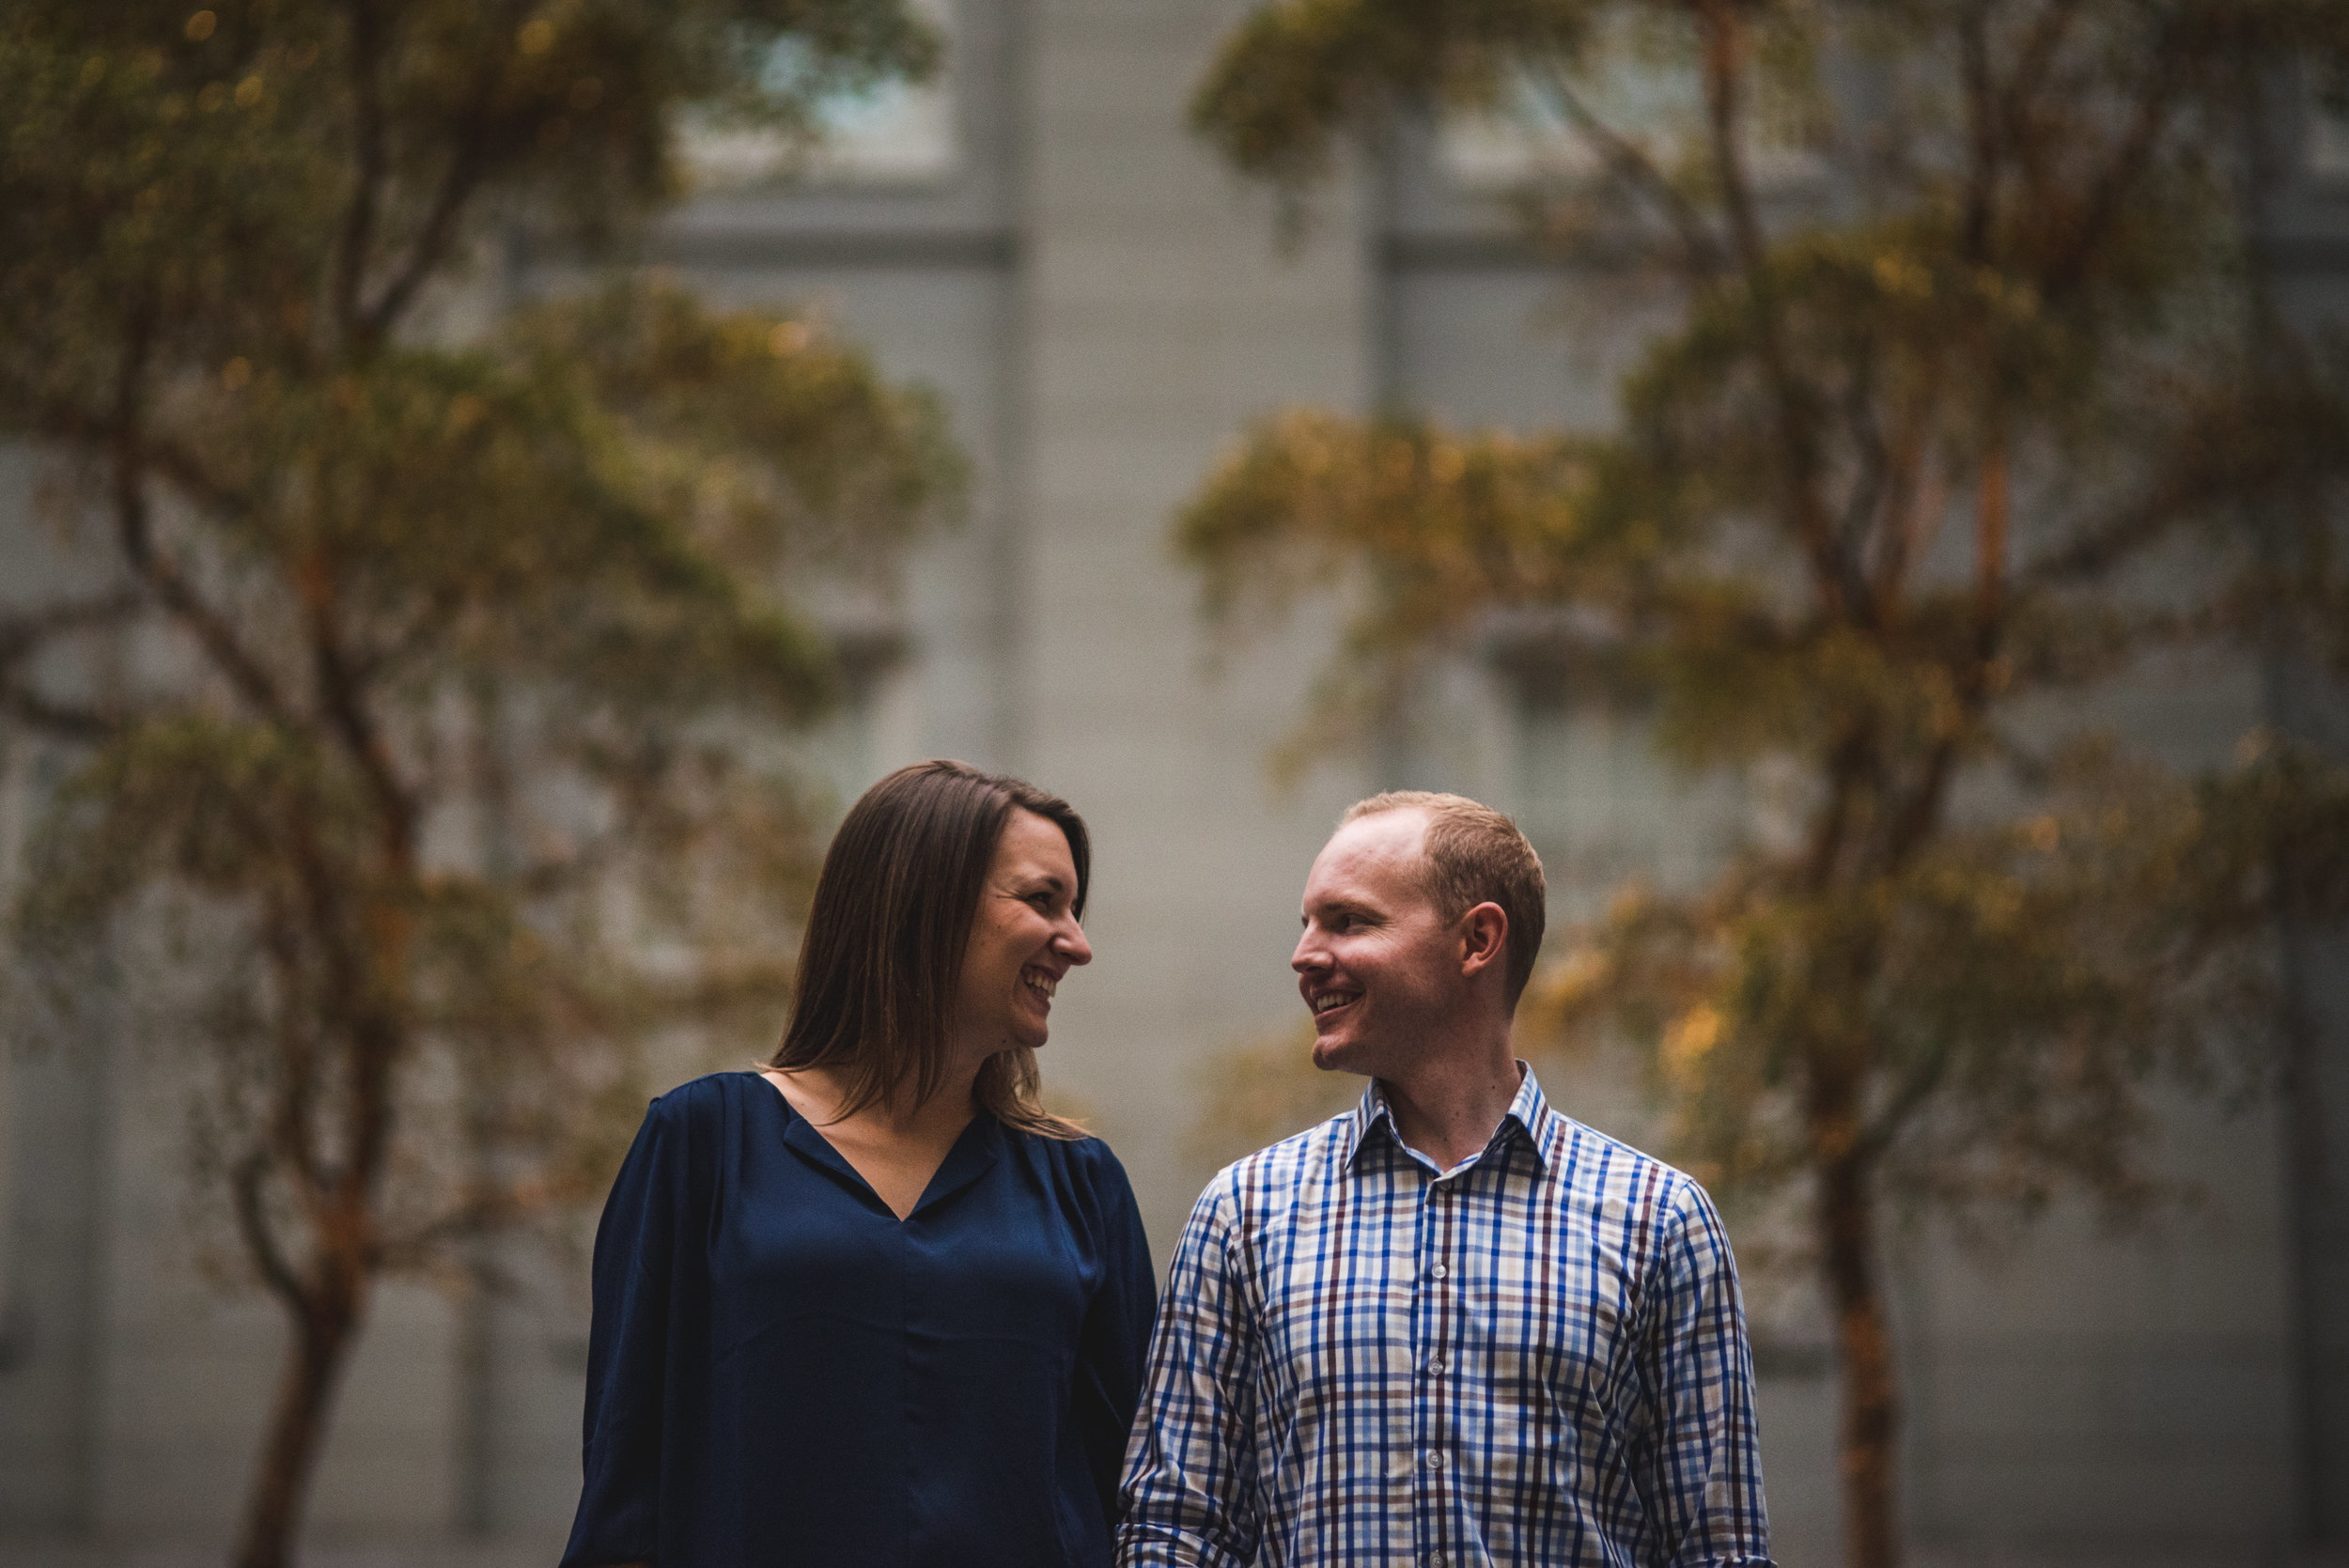 Smithsonian American Art Museum engagement session by Mantas Kubilinskas-21.jpg